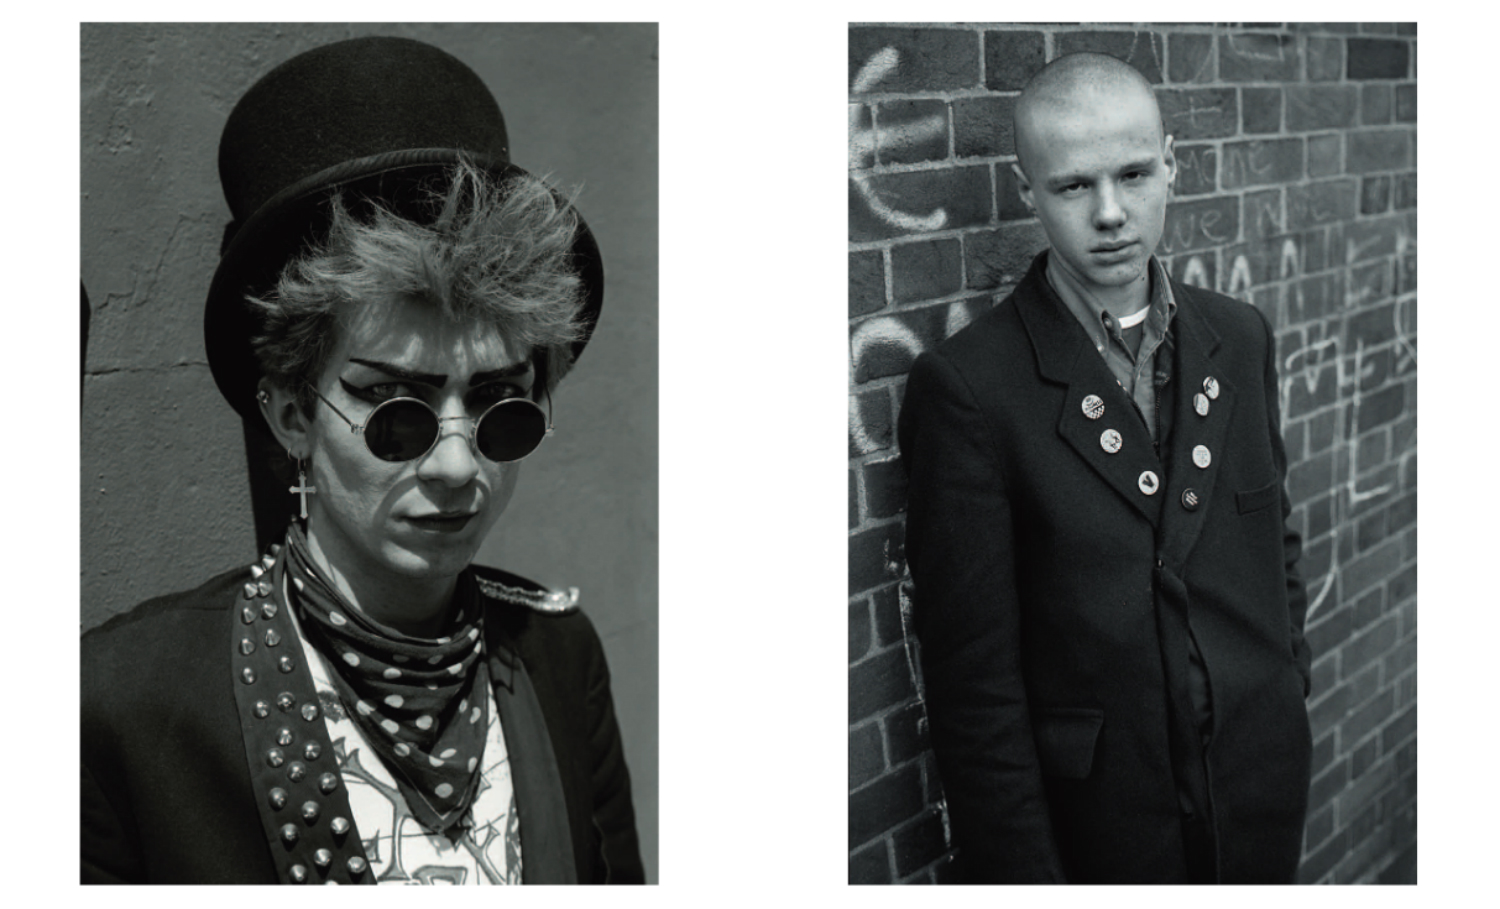 DEREK RIDGERS INTERVIEW ARCHIVES INDIE THE REVOLUTION ISSUE SPRING 2017 PUNK SUBCULTURE YOUTHCULTURE LONDON PHOTOGRAPHY